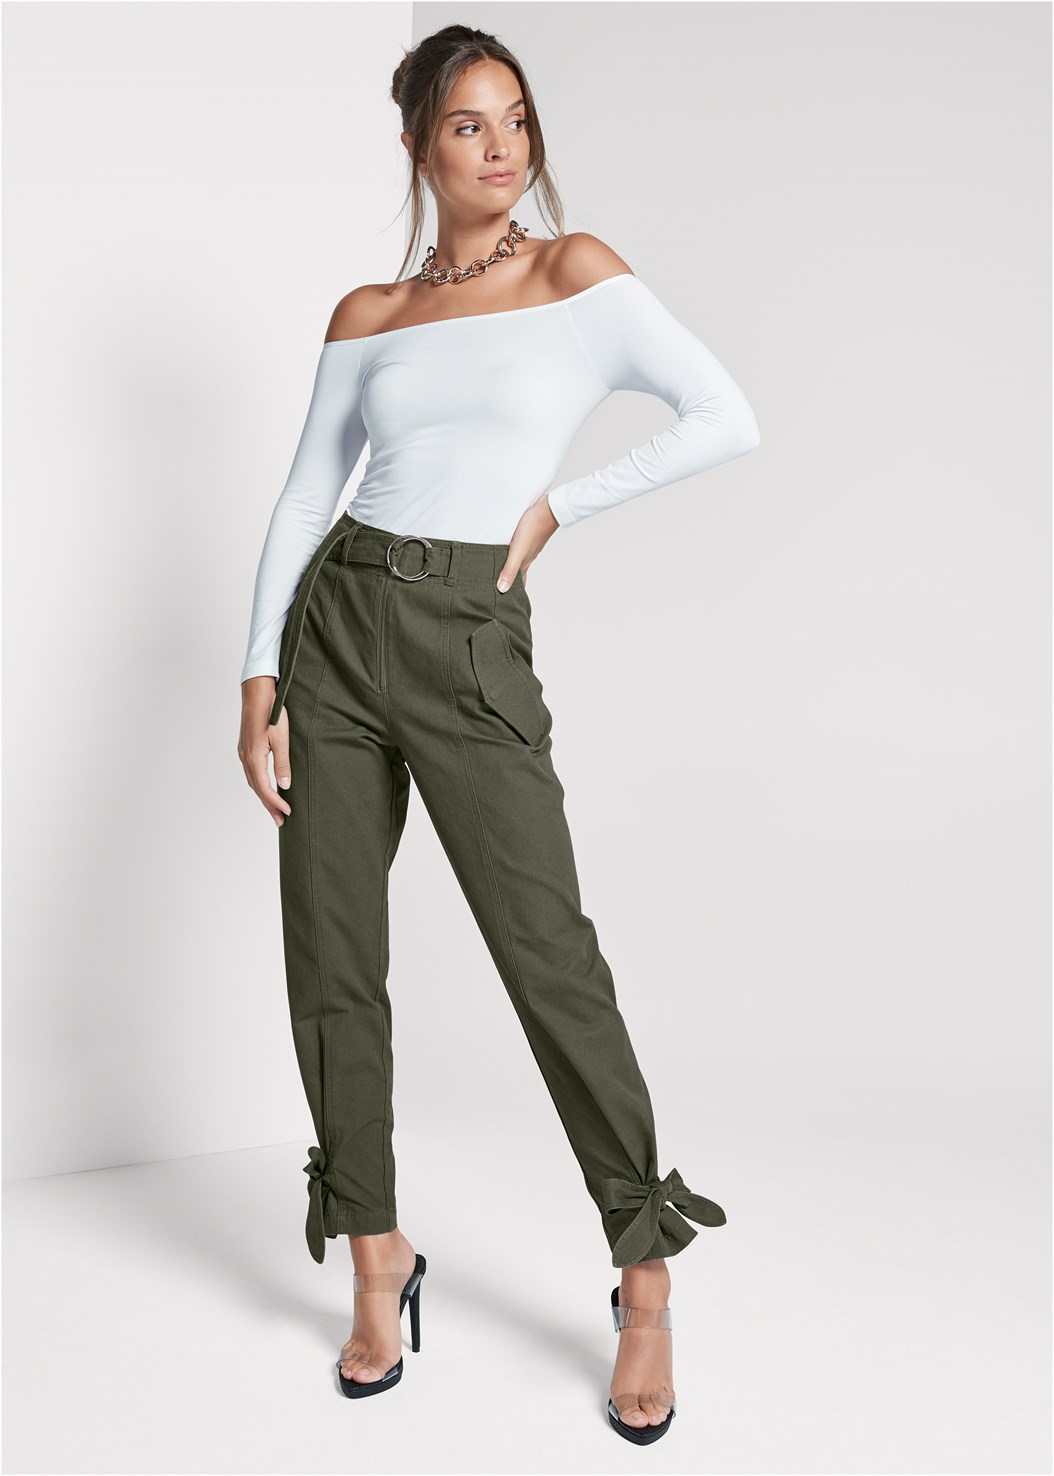 High Waist Belted Pants,Off The Shoulder Top,Lucite Strap Heels